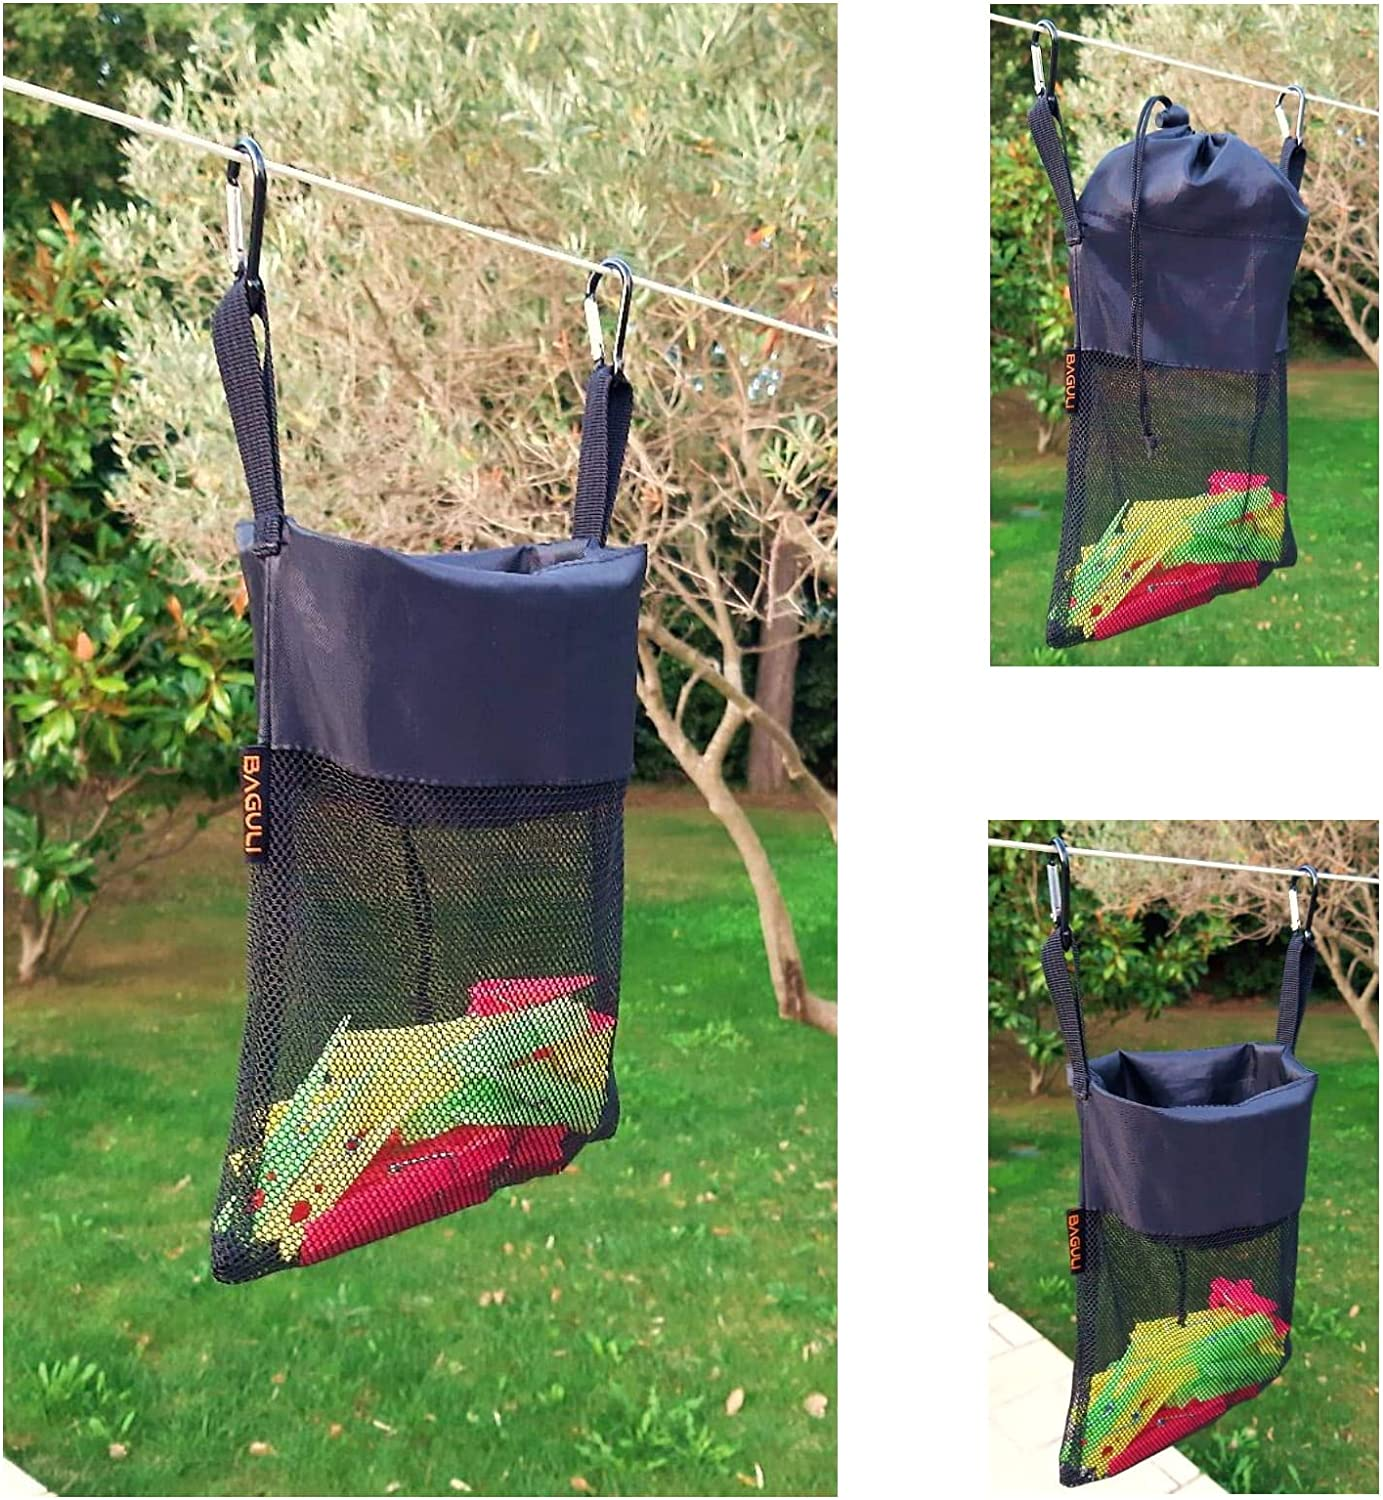 BAGULI Multifunctional Mesh Bag for Hanging with Drawstring Toys Dimensions 22//30x20cm Storage Bag for Clothes Pegs Mesh Bag for Toiletries Clothes Peg Bag Small Items